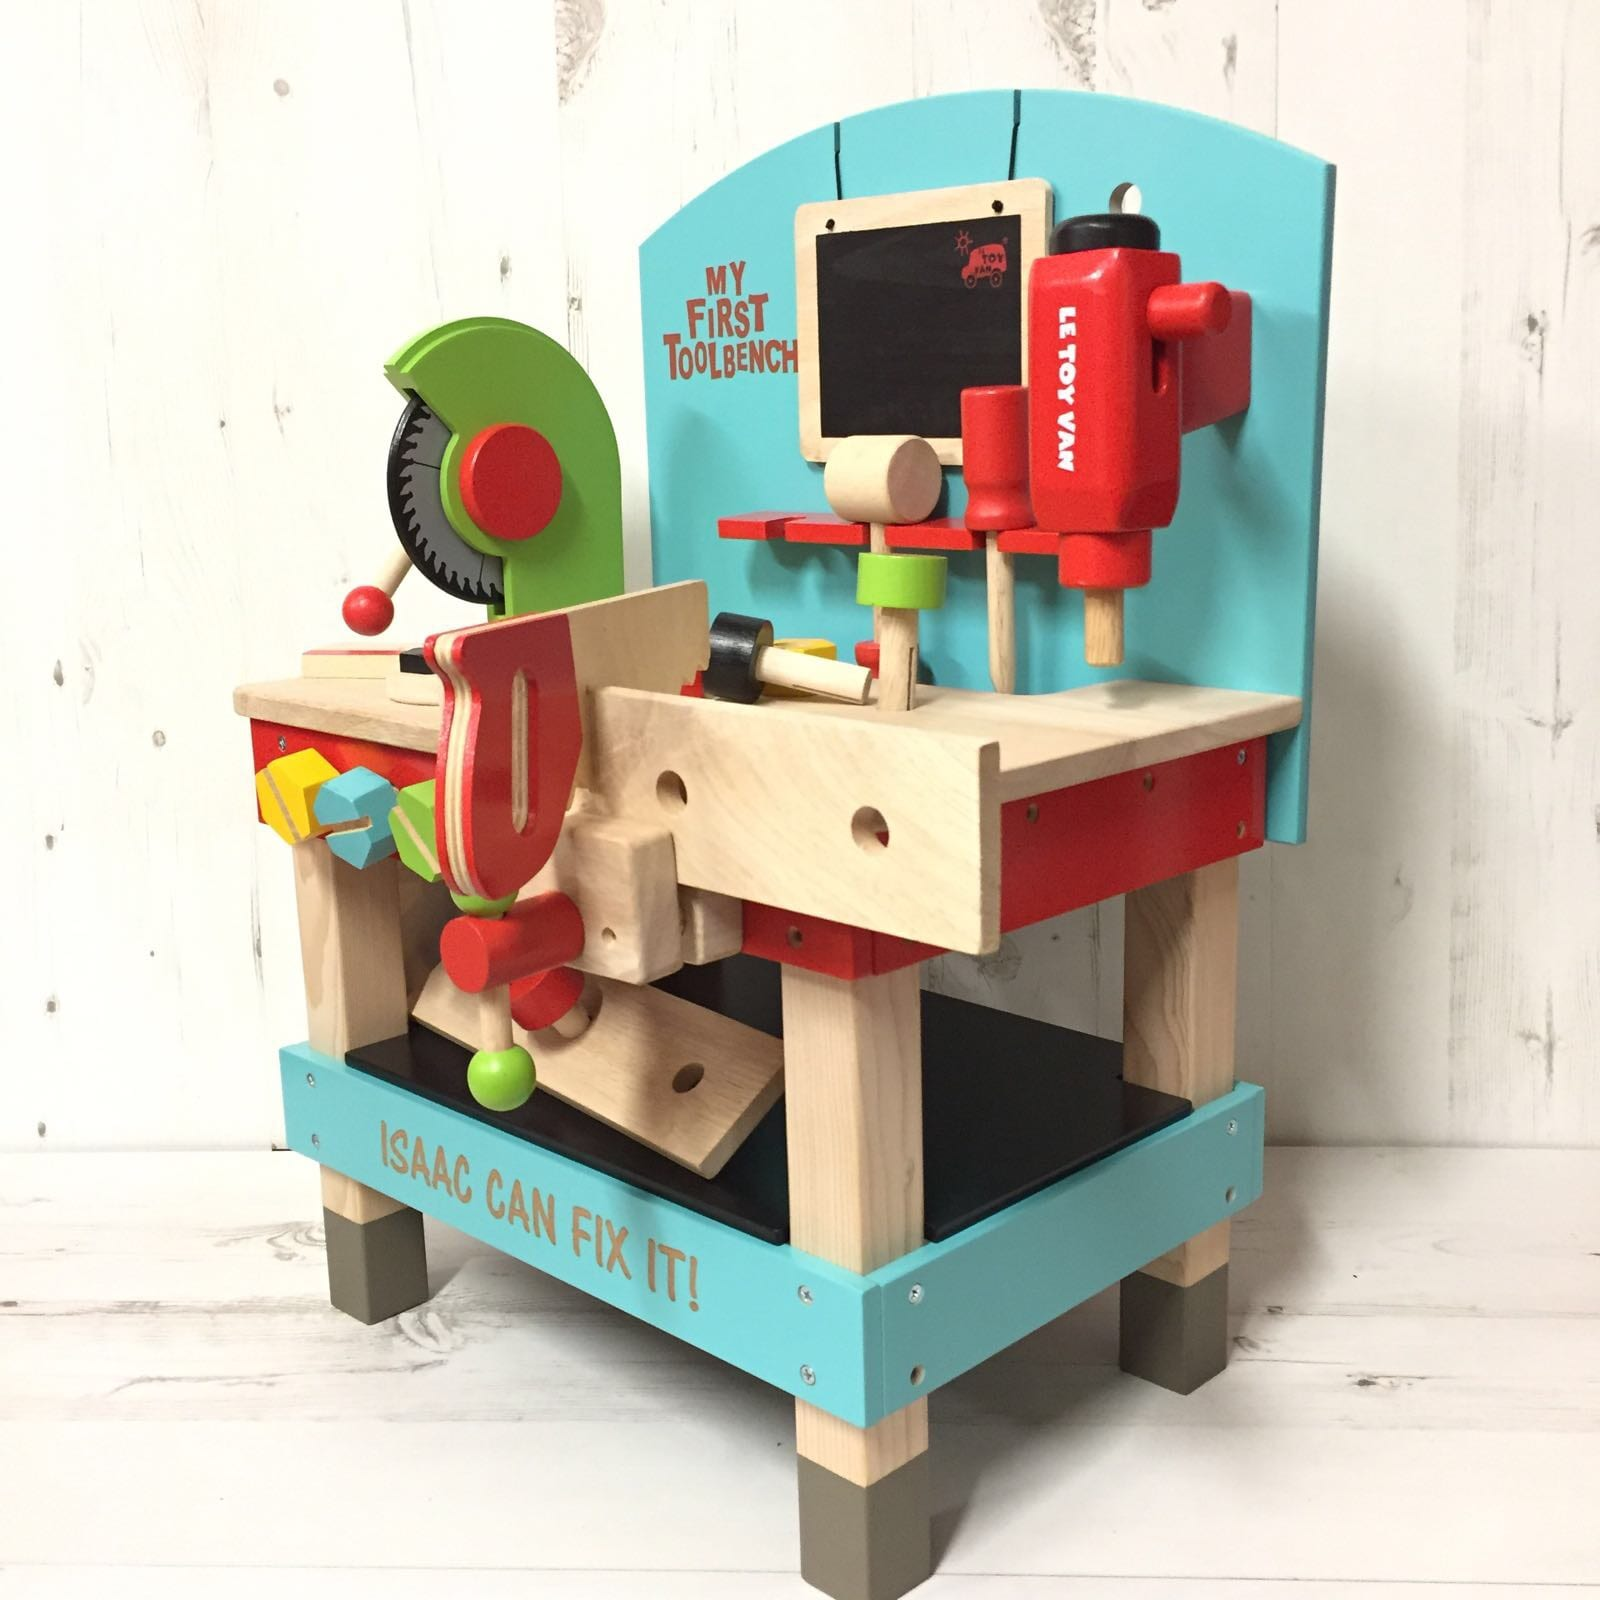 Personalised Wooden Tool Bench Toy Love Unique Personal